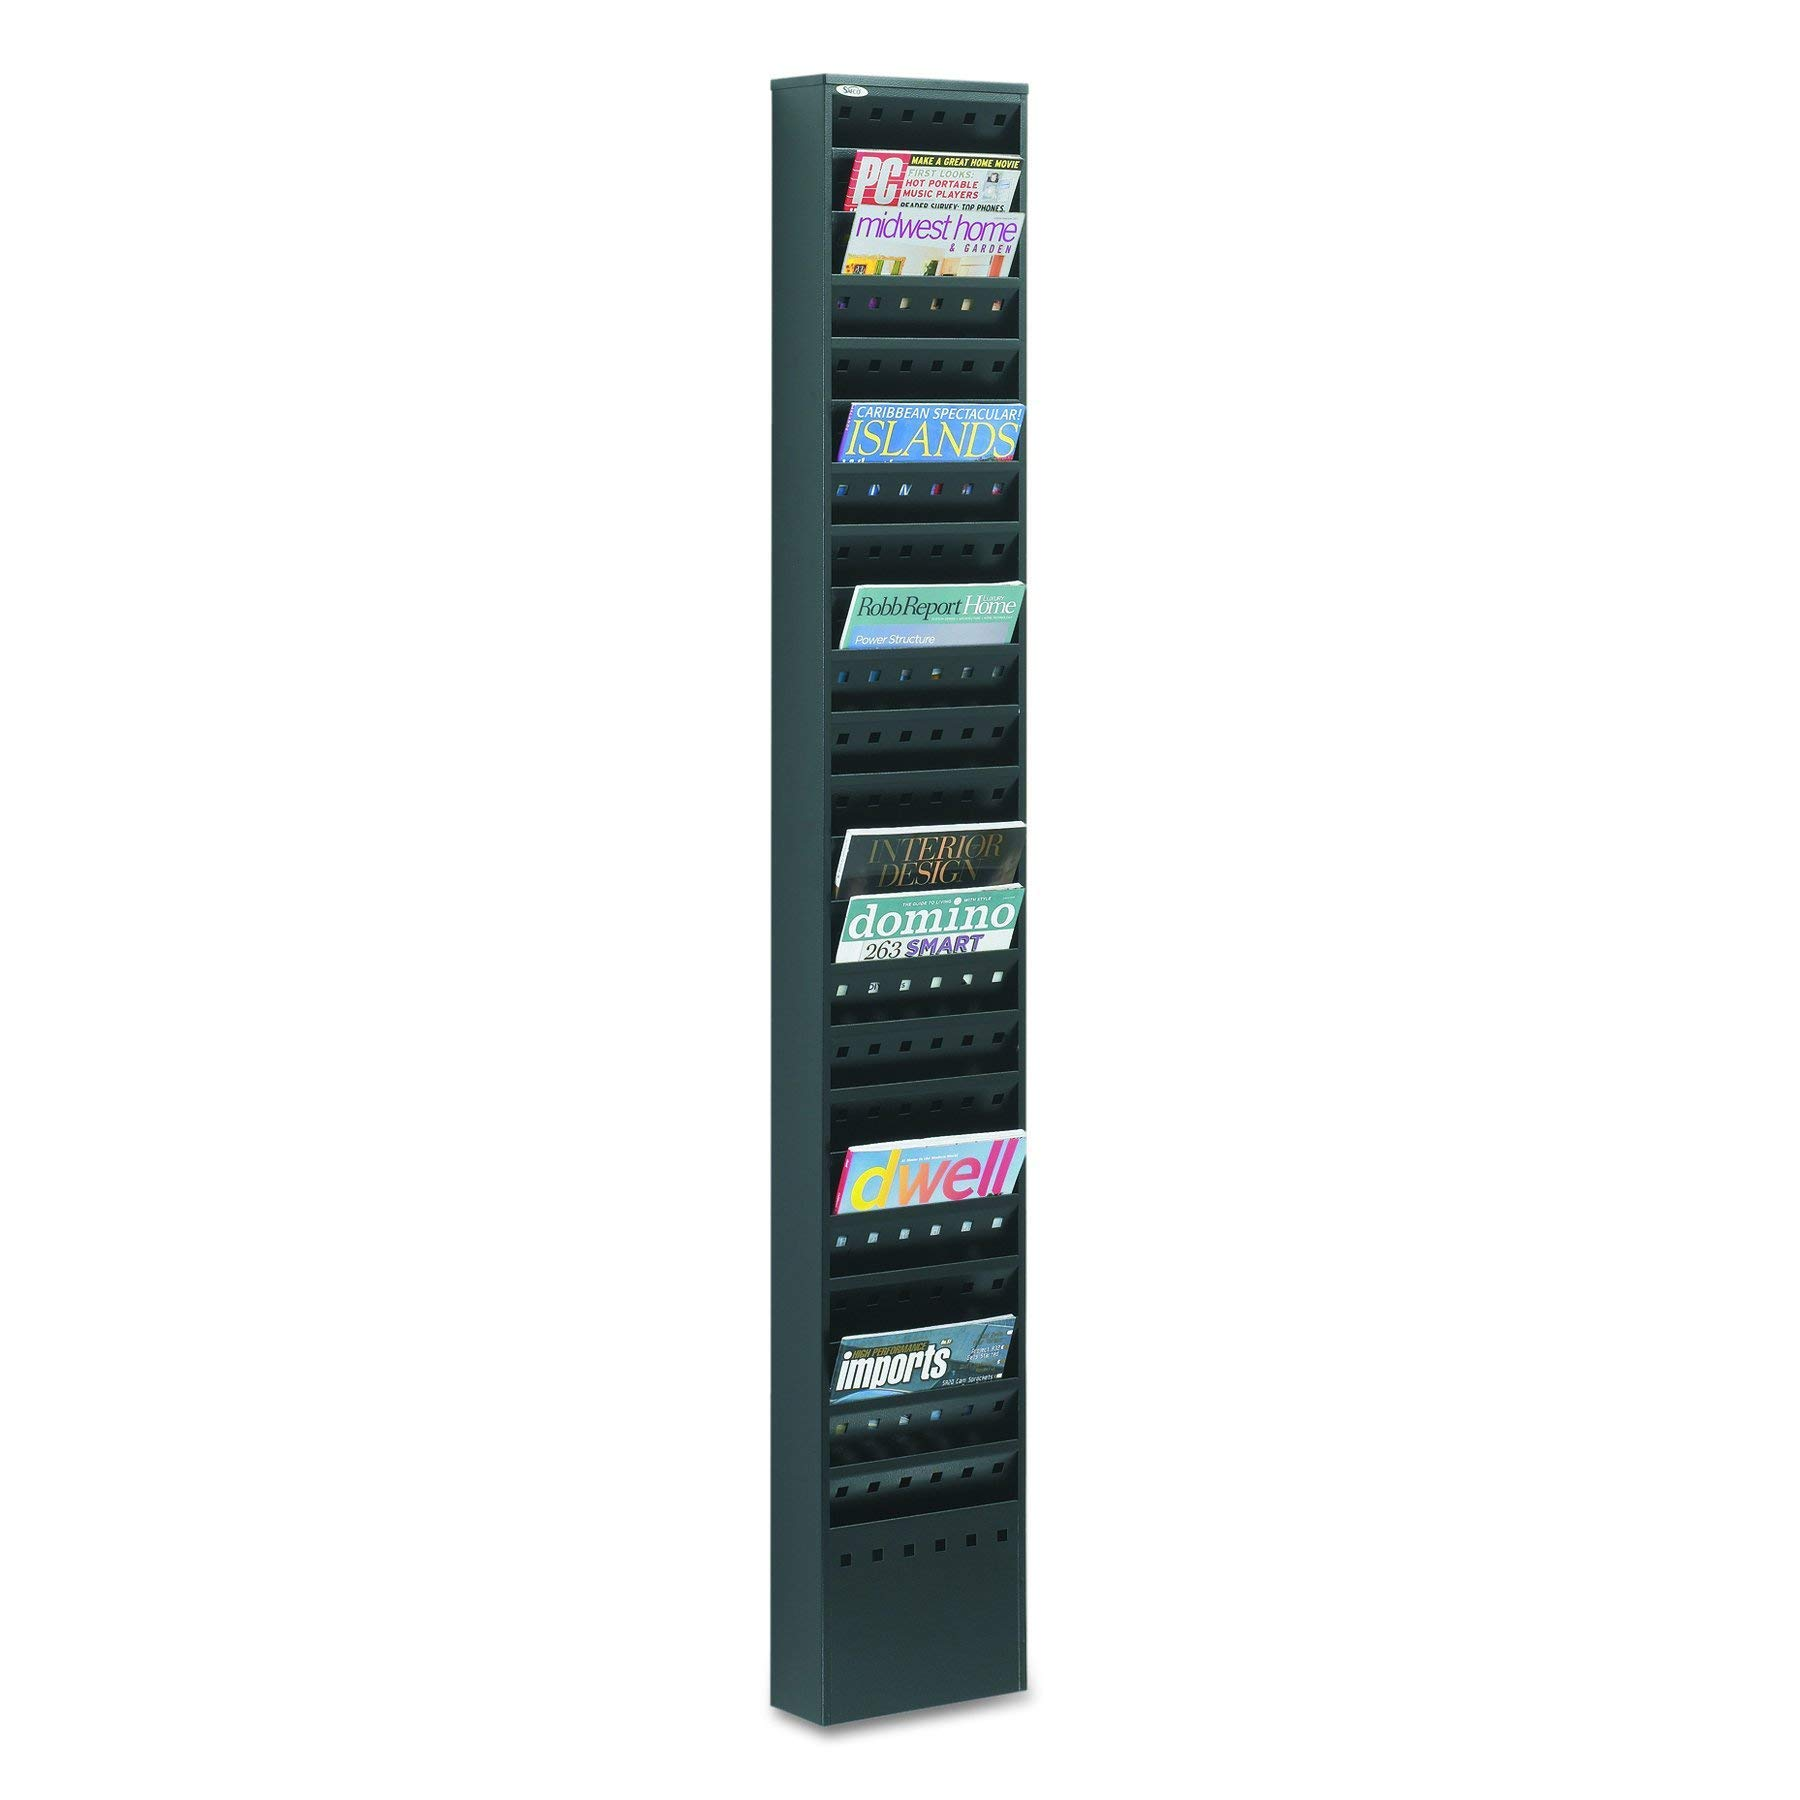 Safco Products 4322BL Steel Magazine Rack, 23 Pocket, Black by Safco Products